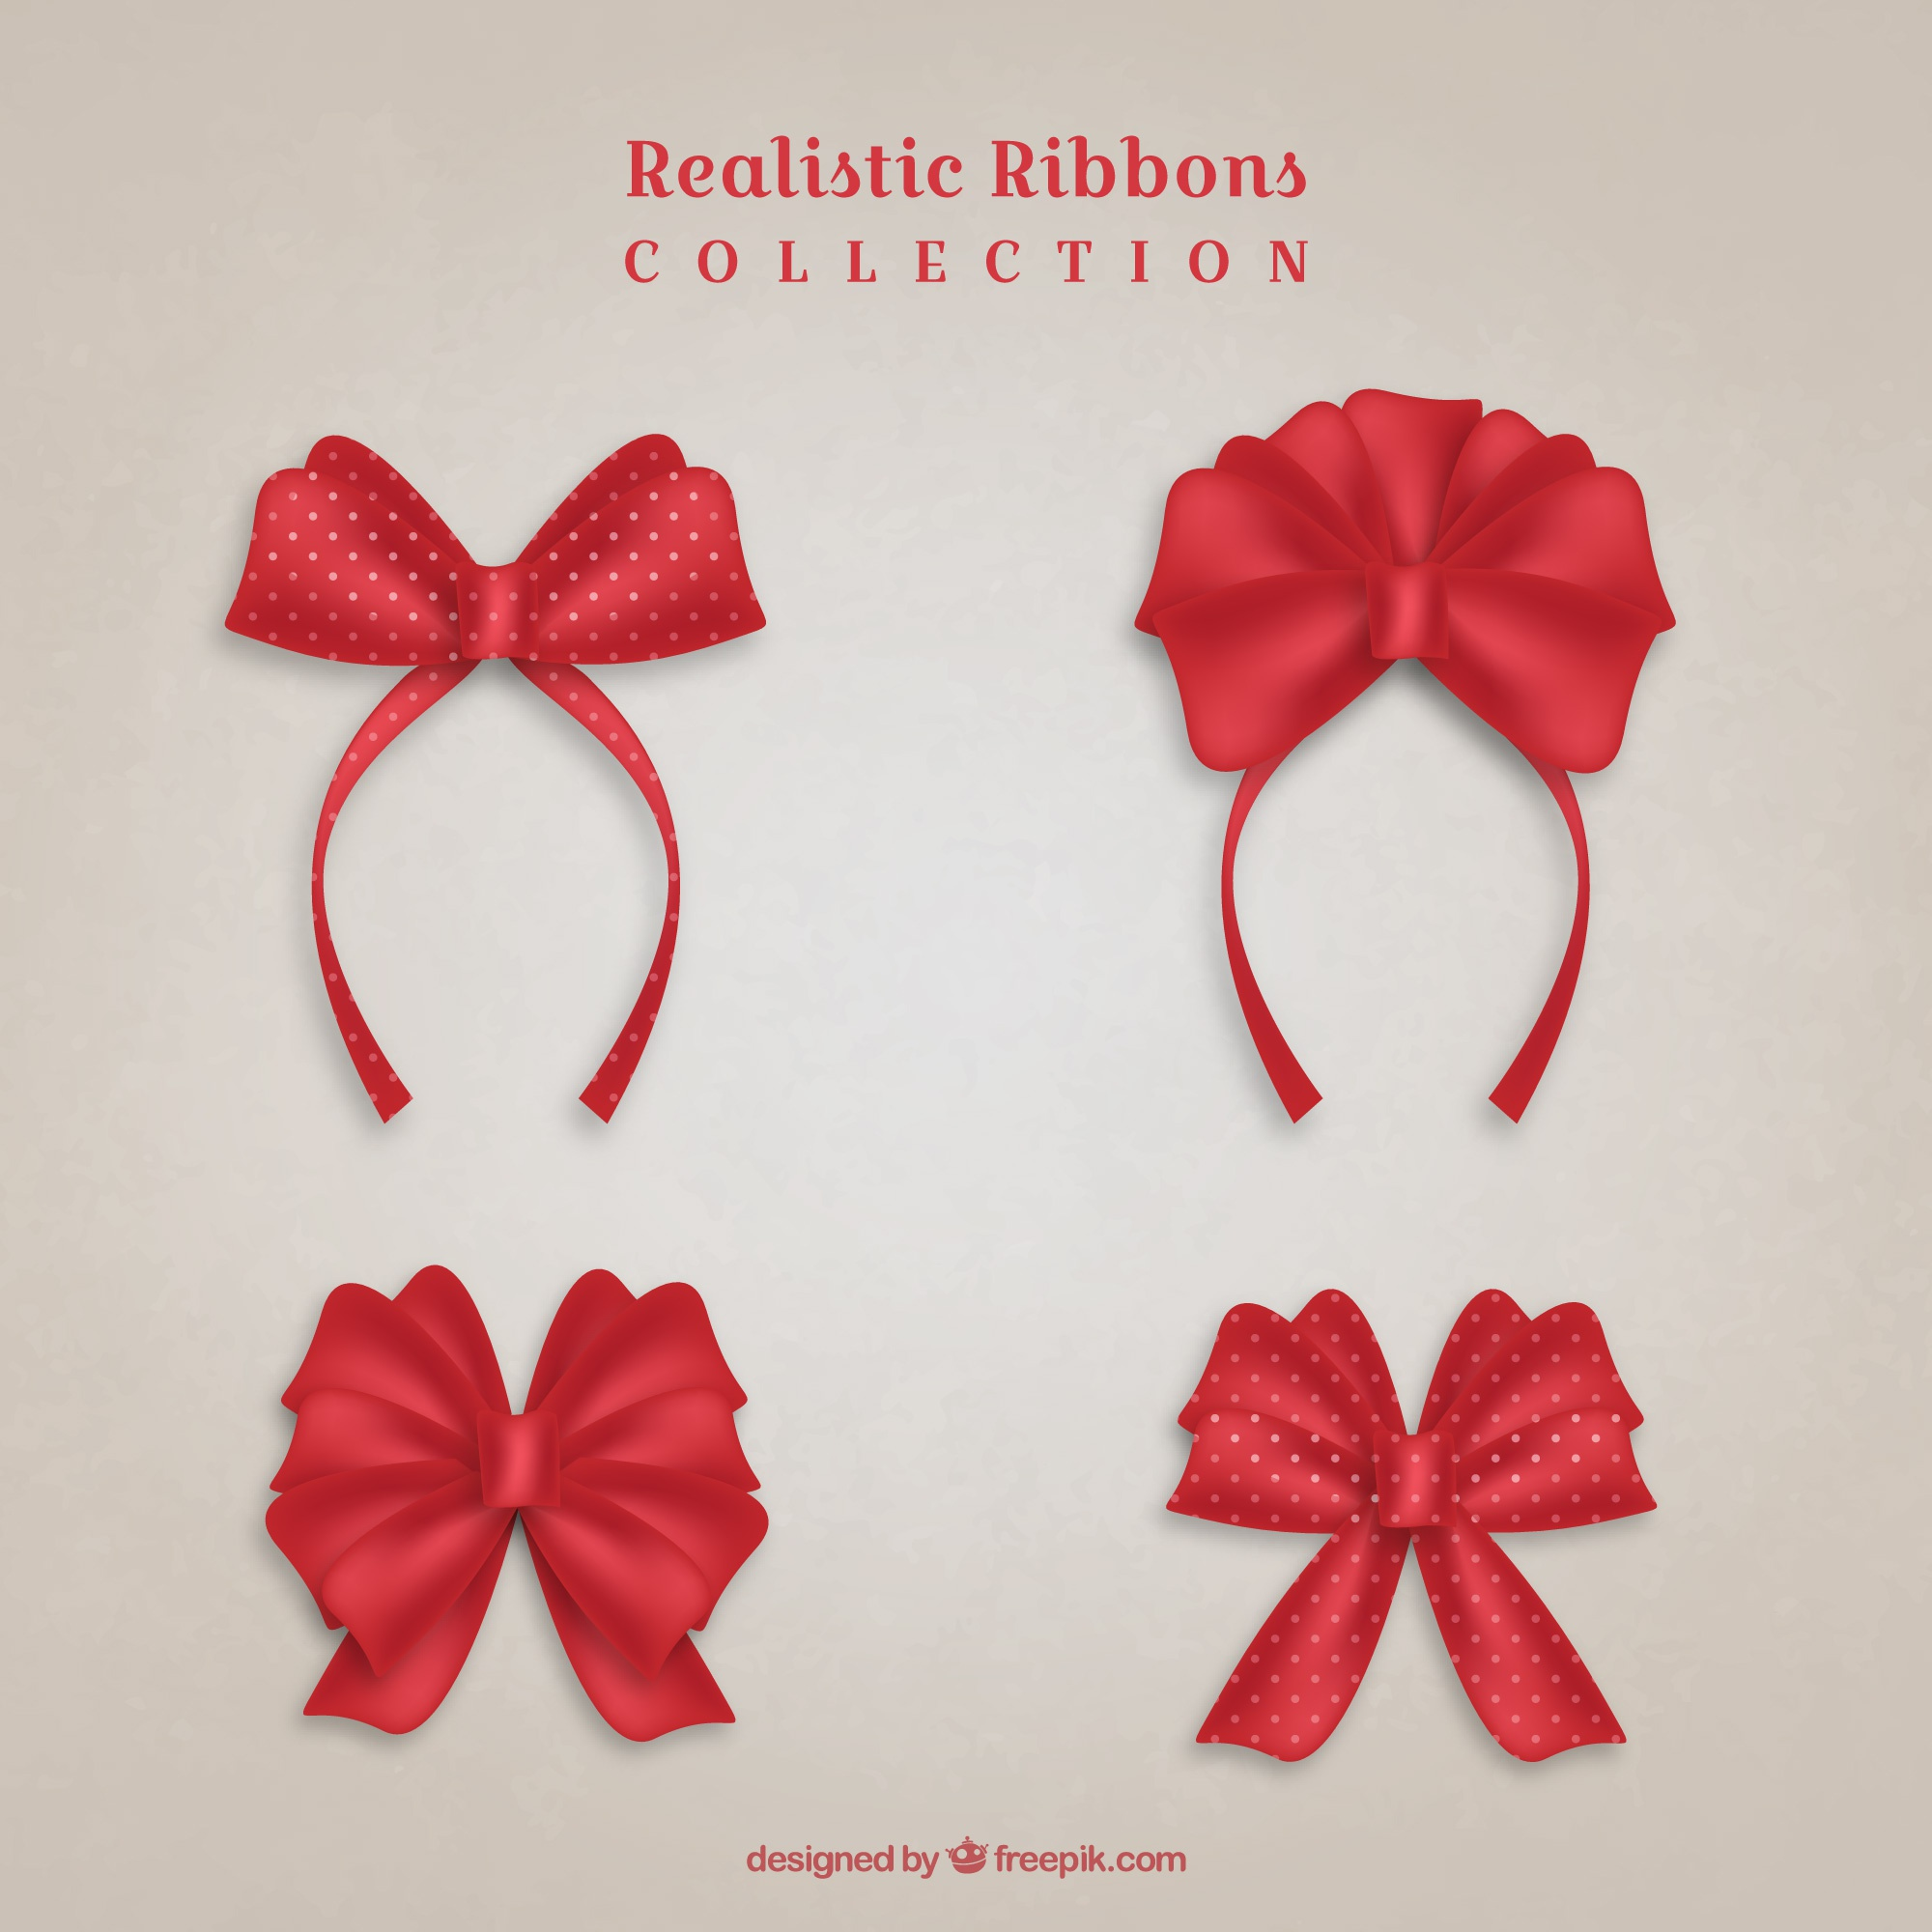 Set of four red ribbons in realistic style